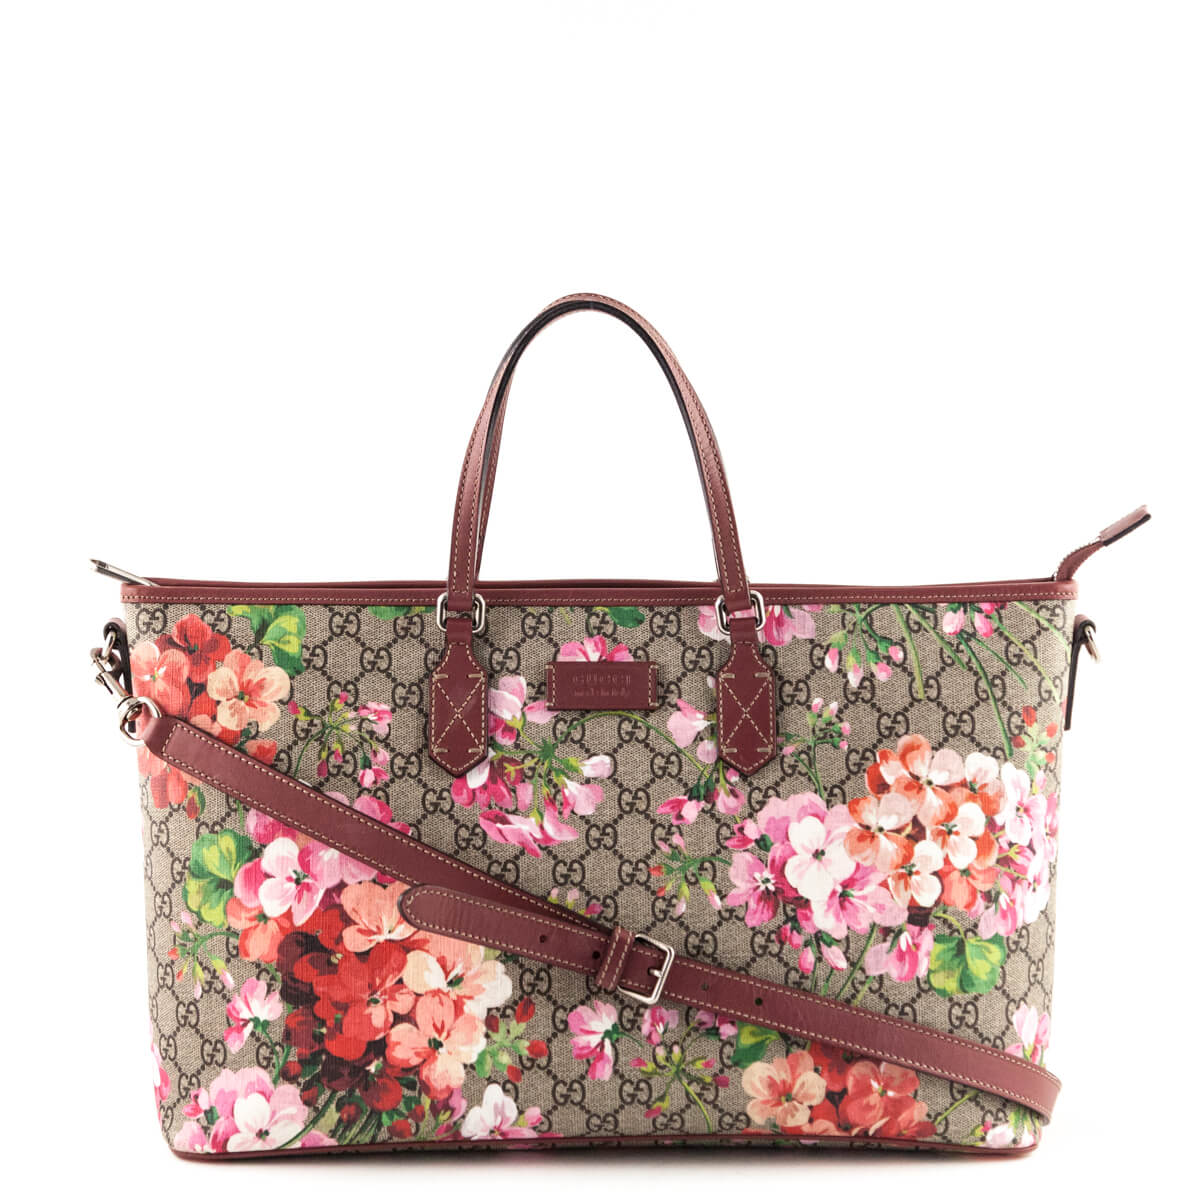 Gucci Antique Rose Monogram Soft GG Blooms Tote - LOVE that BAG - Preowned  Authentic Designer ... 8b7c6ce836416